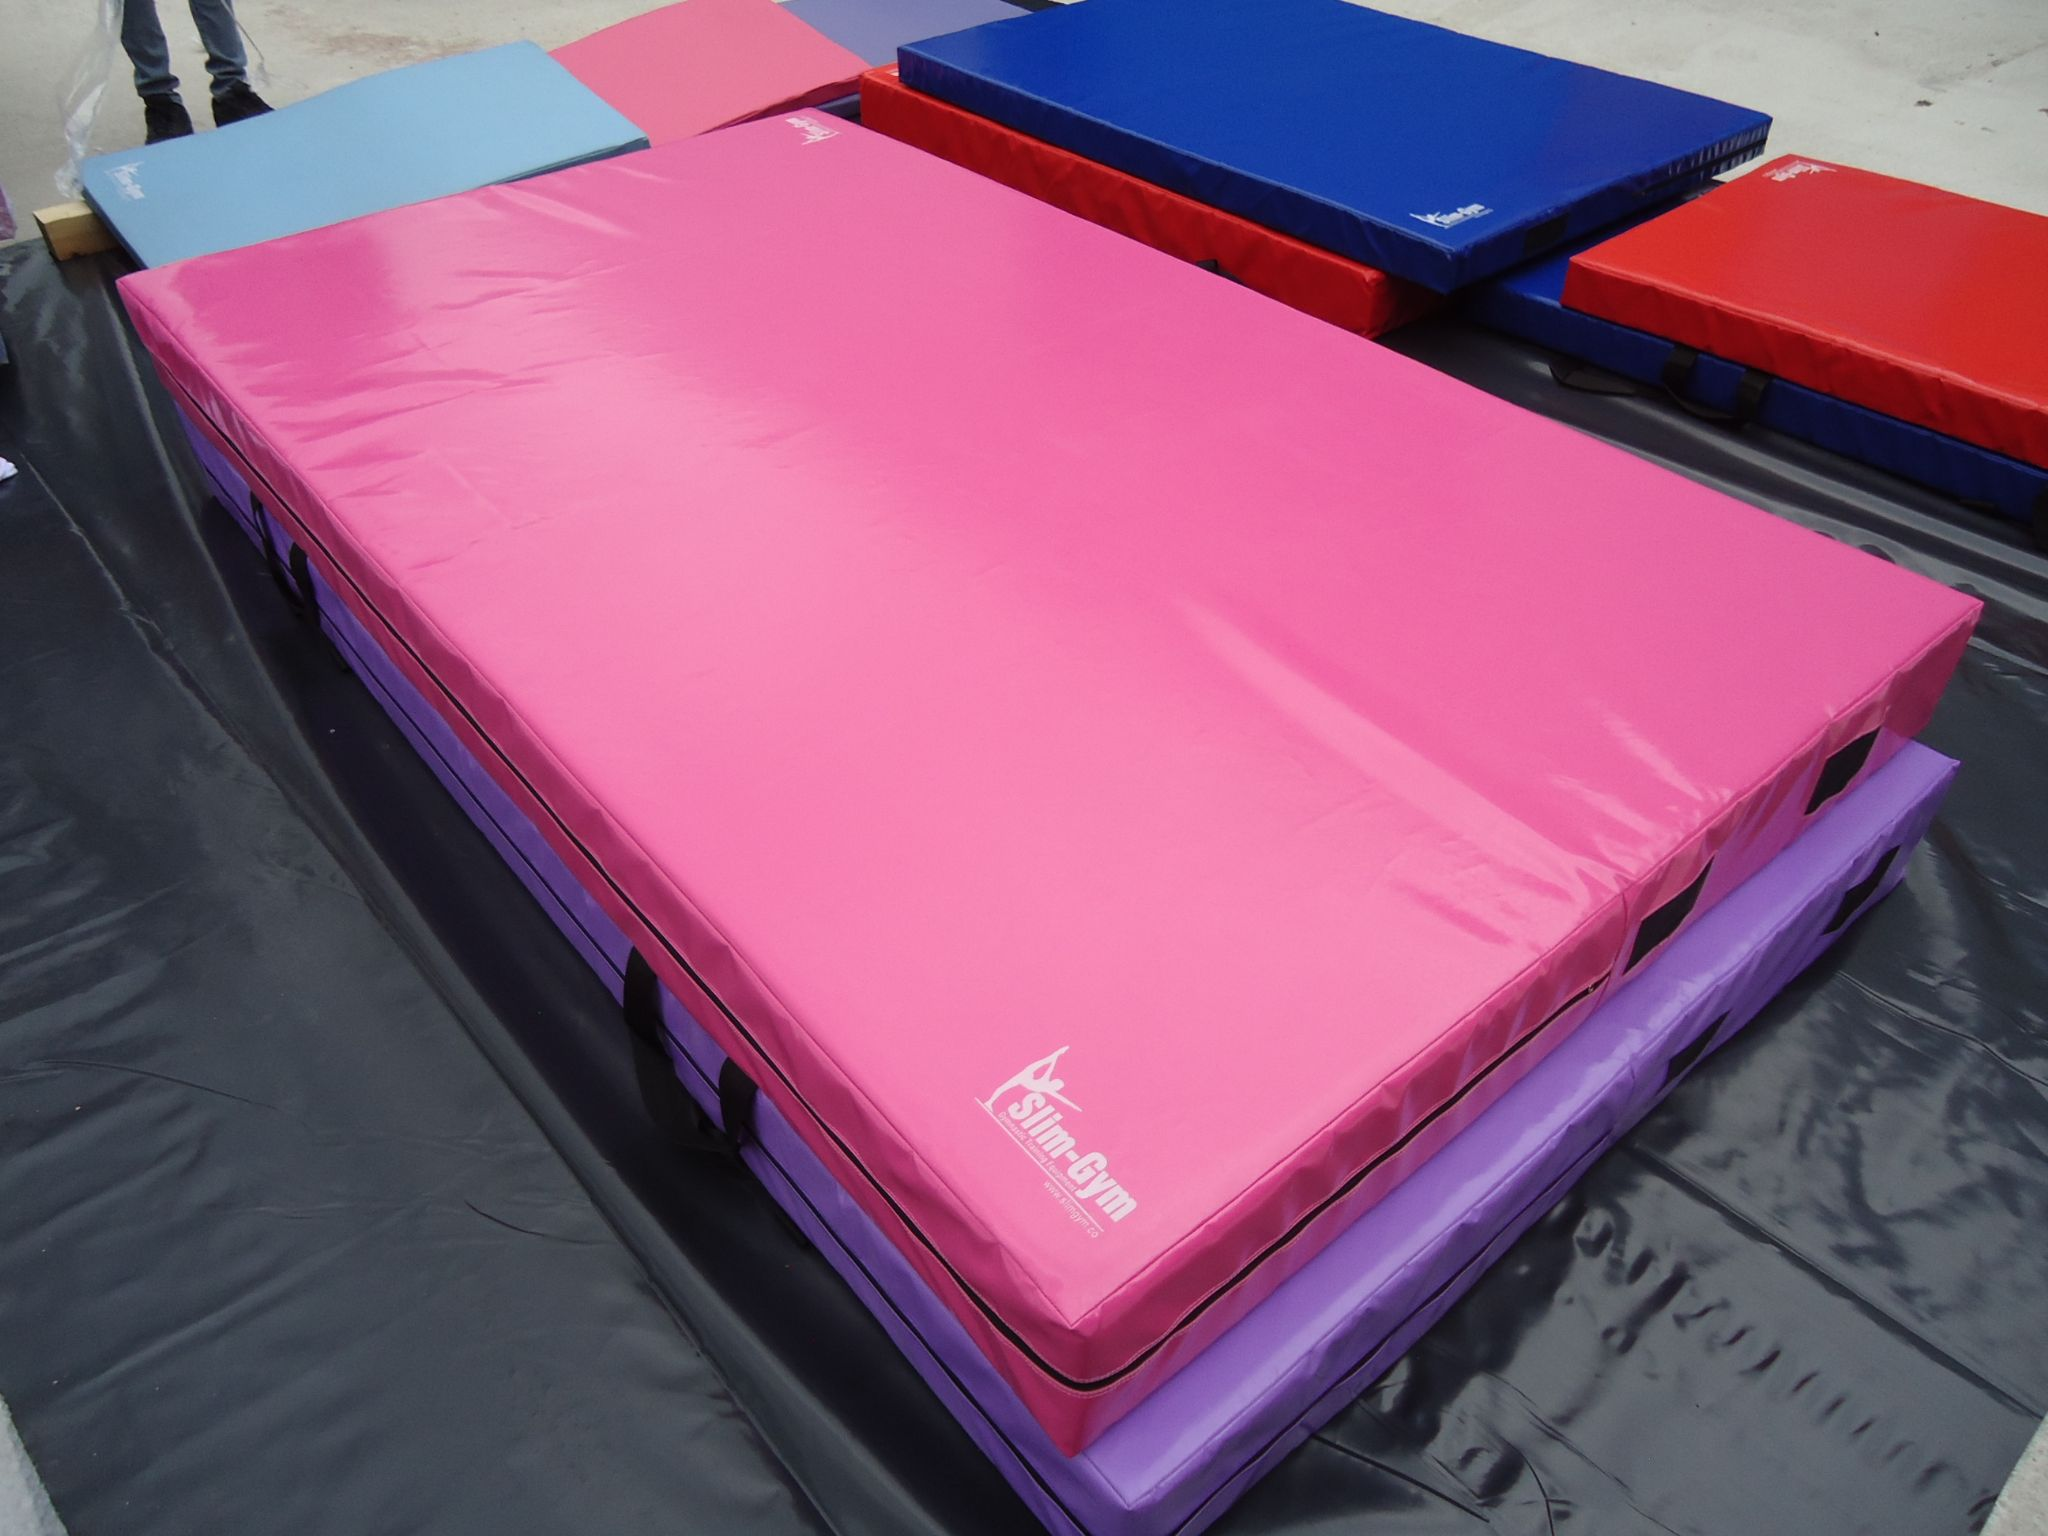 pink mat purple image gymnastics goods tumbling x pu leather sporting mats martial folding arts soozier